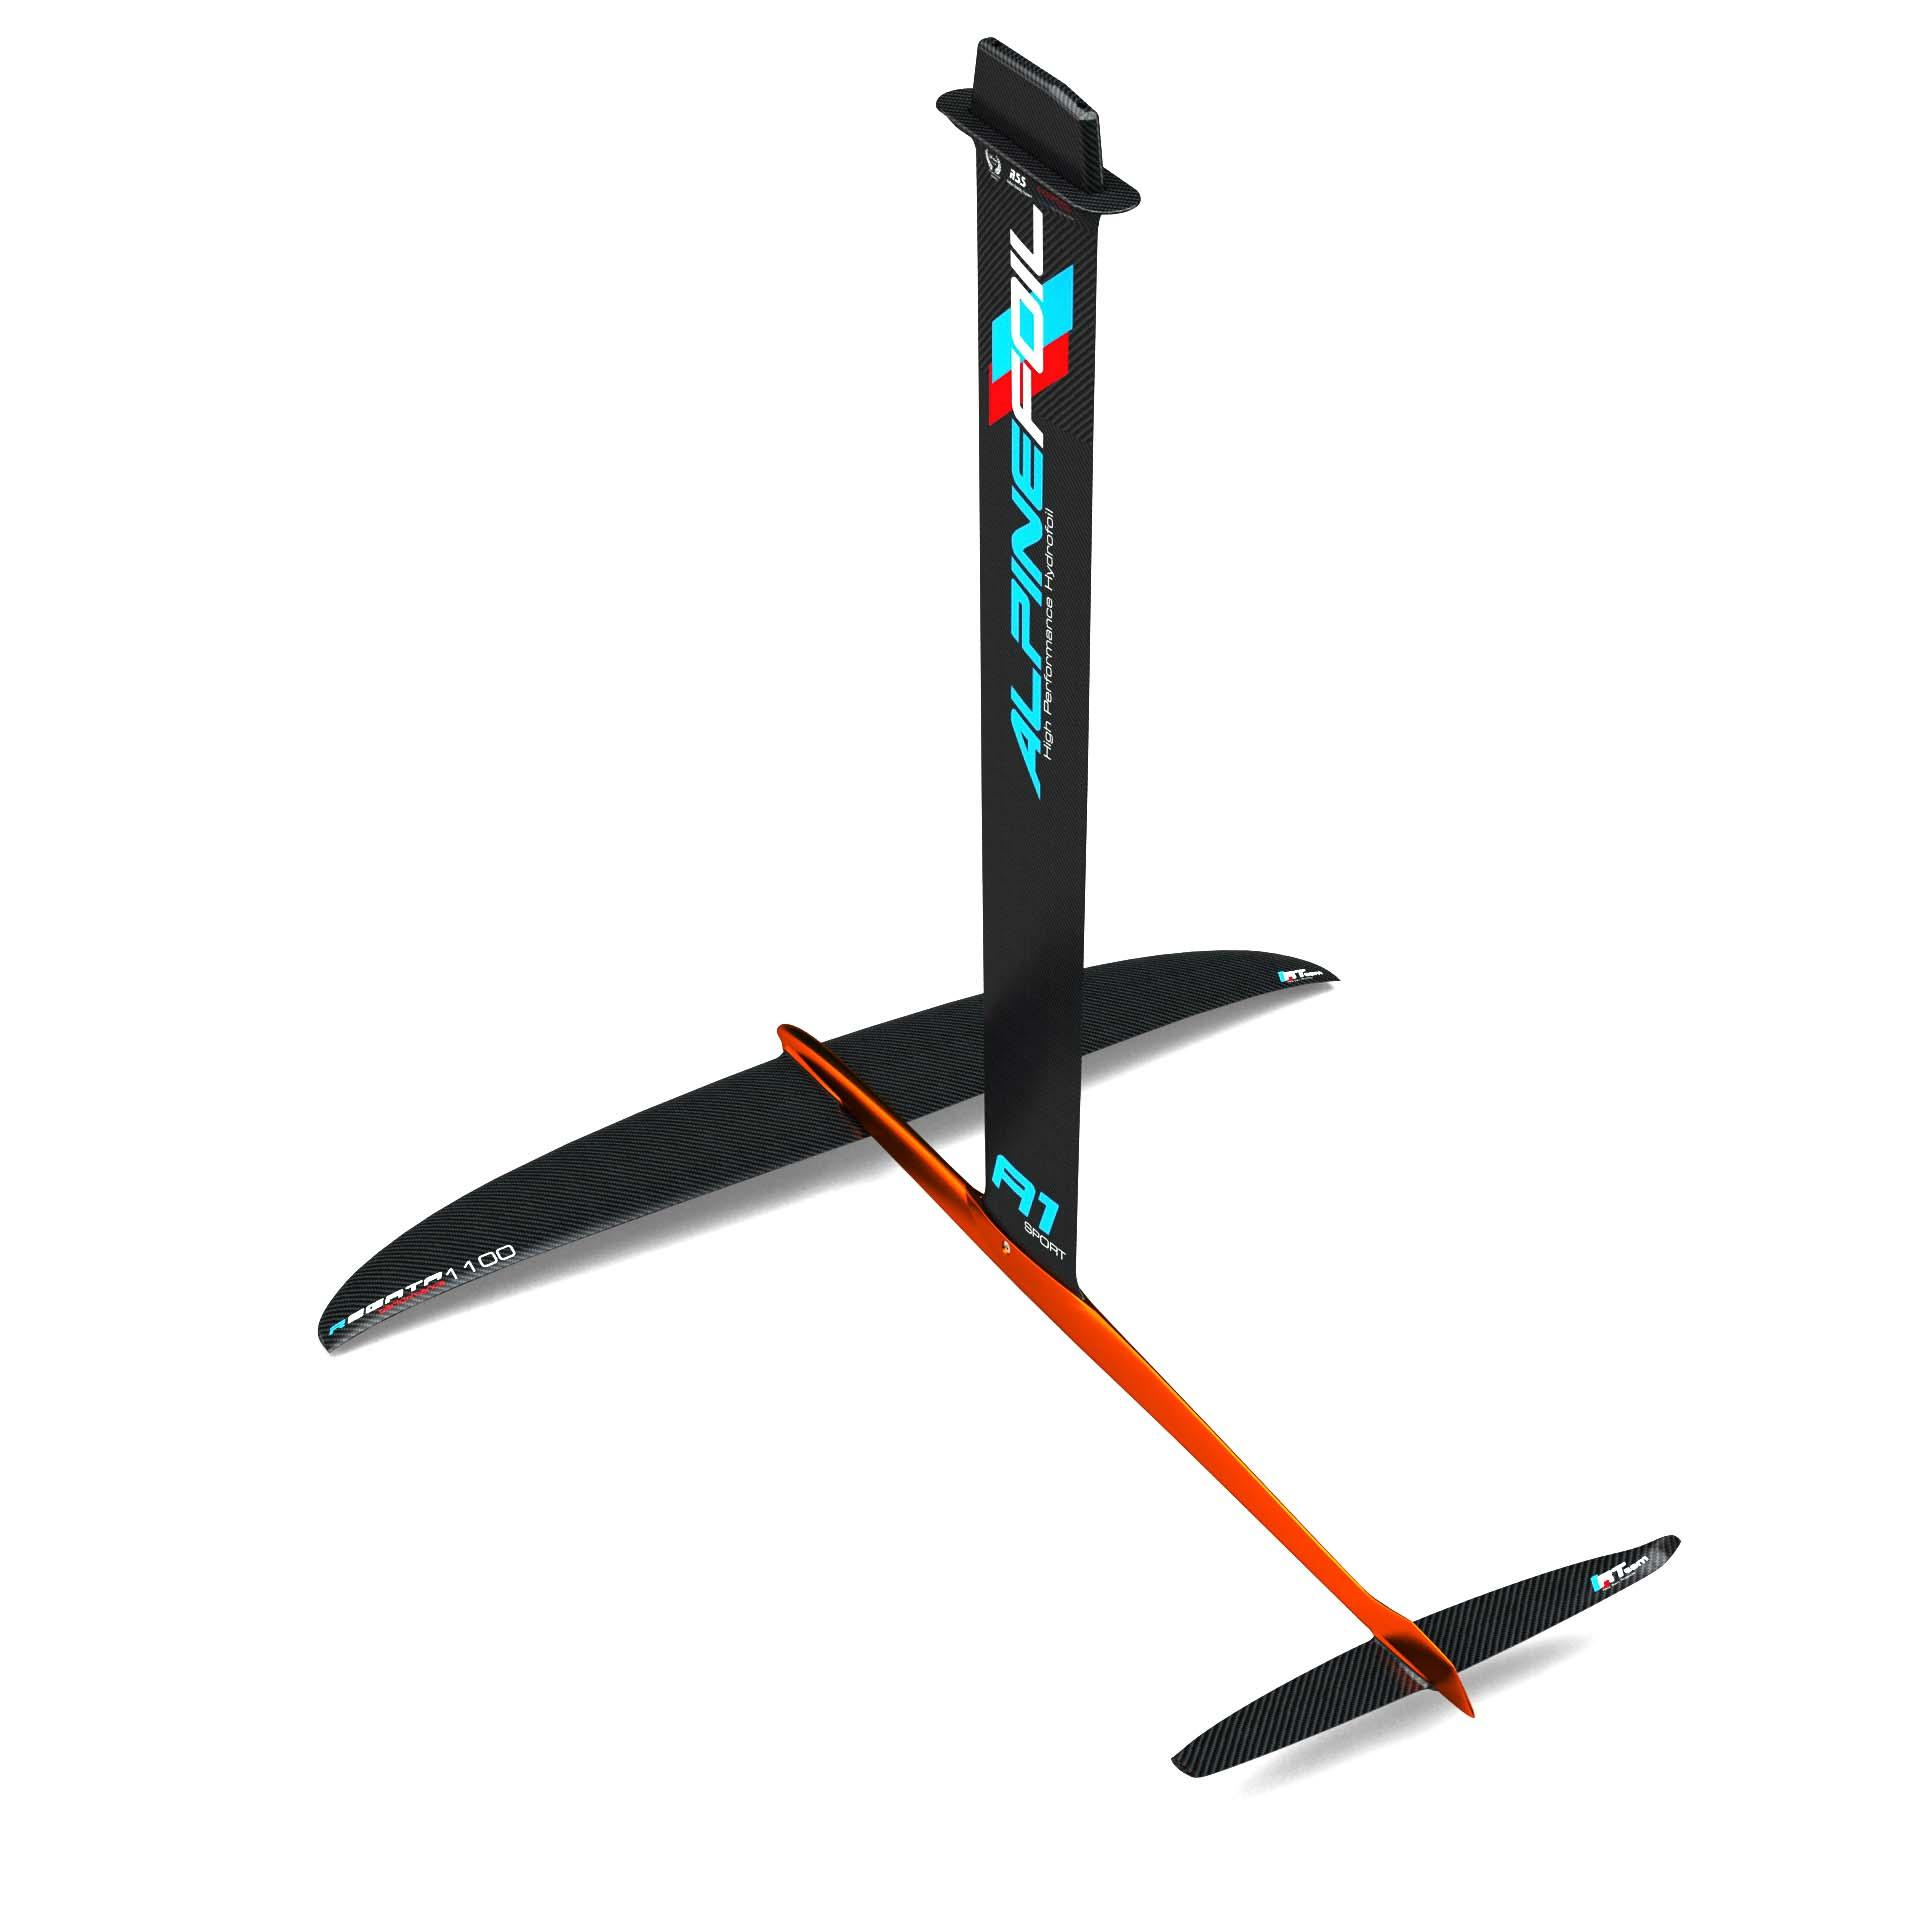 Windfoil alpinefoil a1 sport carbon regatta 1100 19